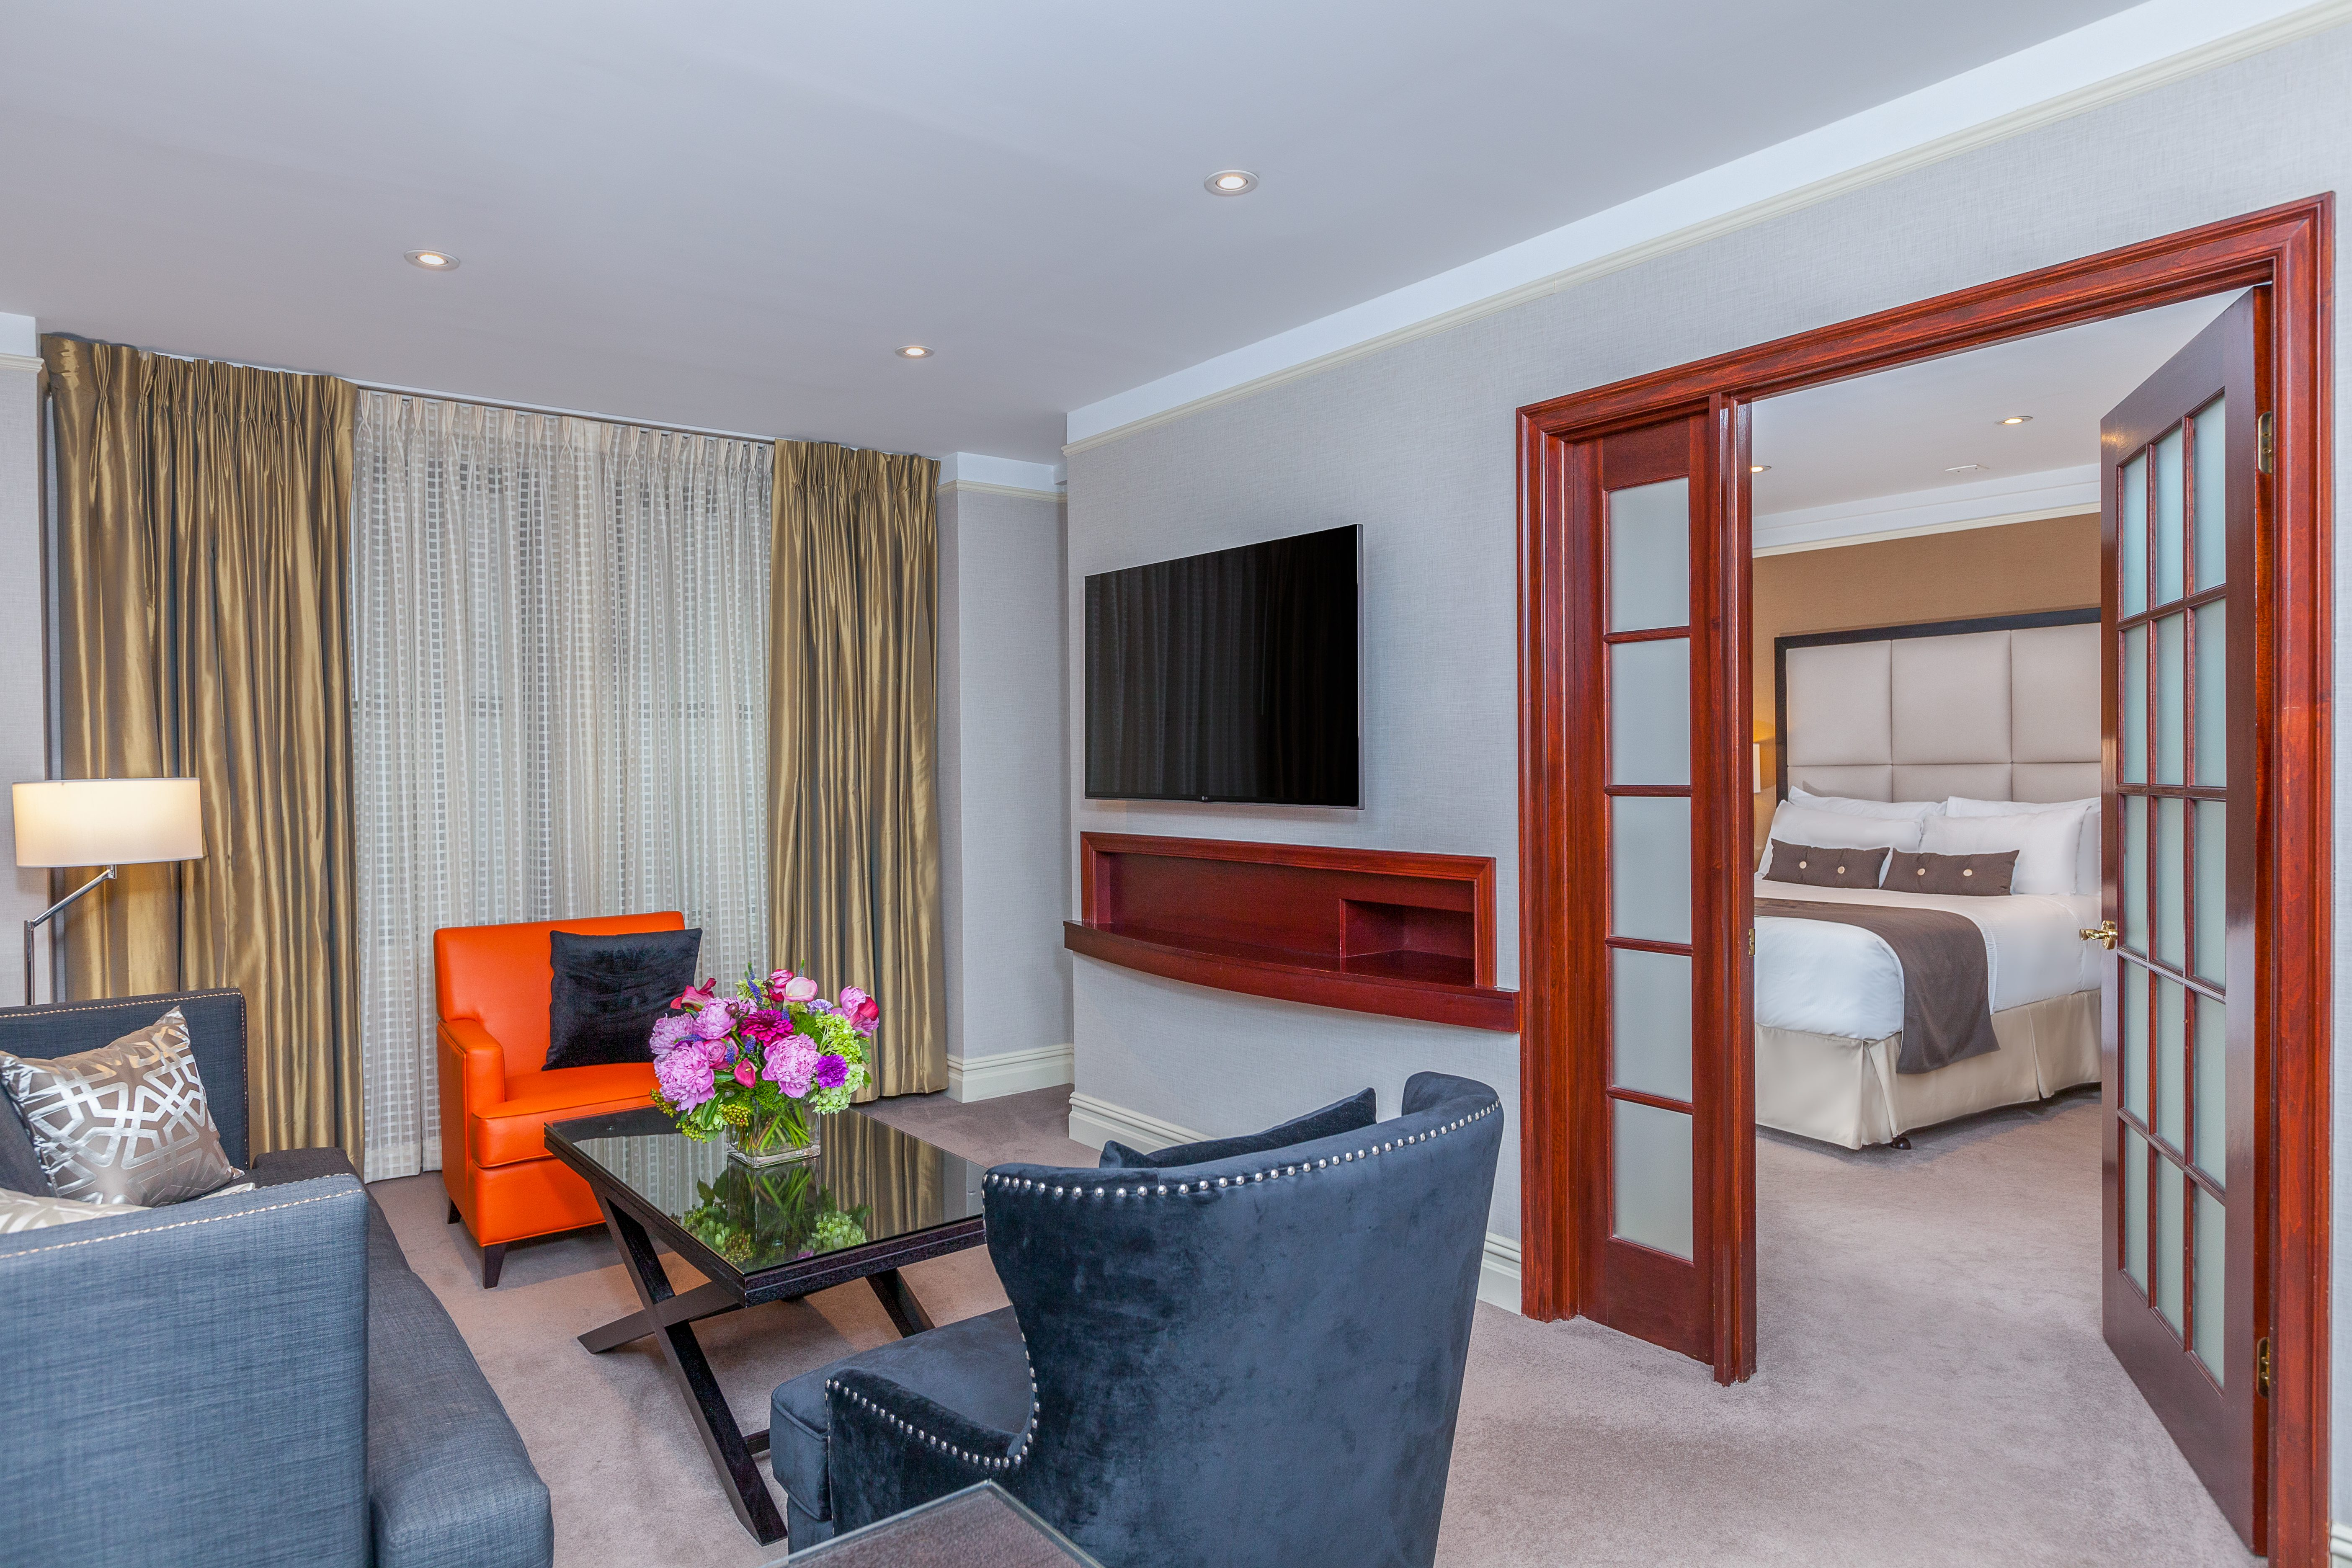 Seating area in a suite with orange armchair, grey armchair, dark coffee table, tv screen on the wall and door to the bedroom